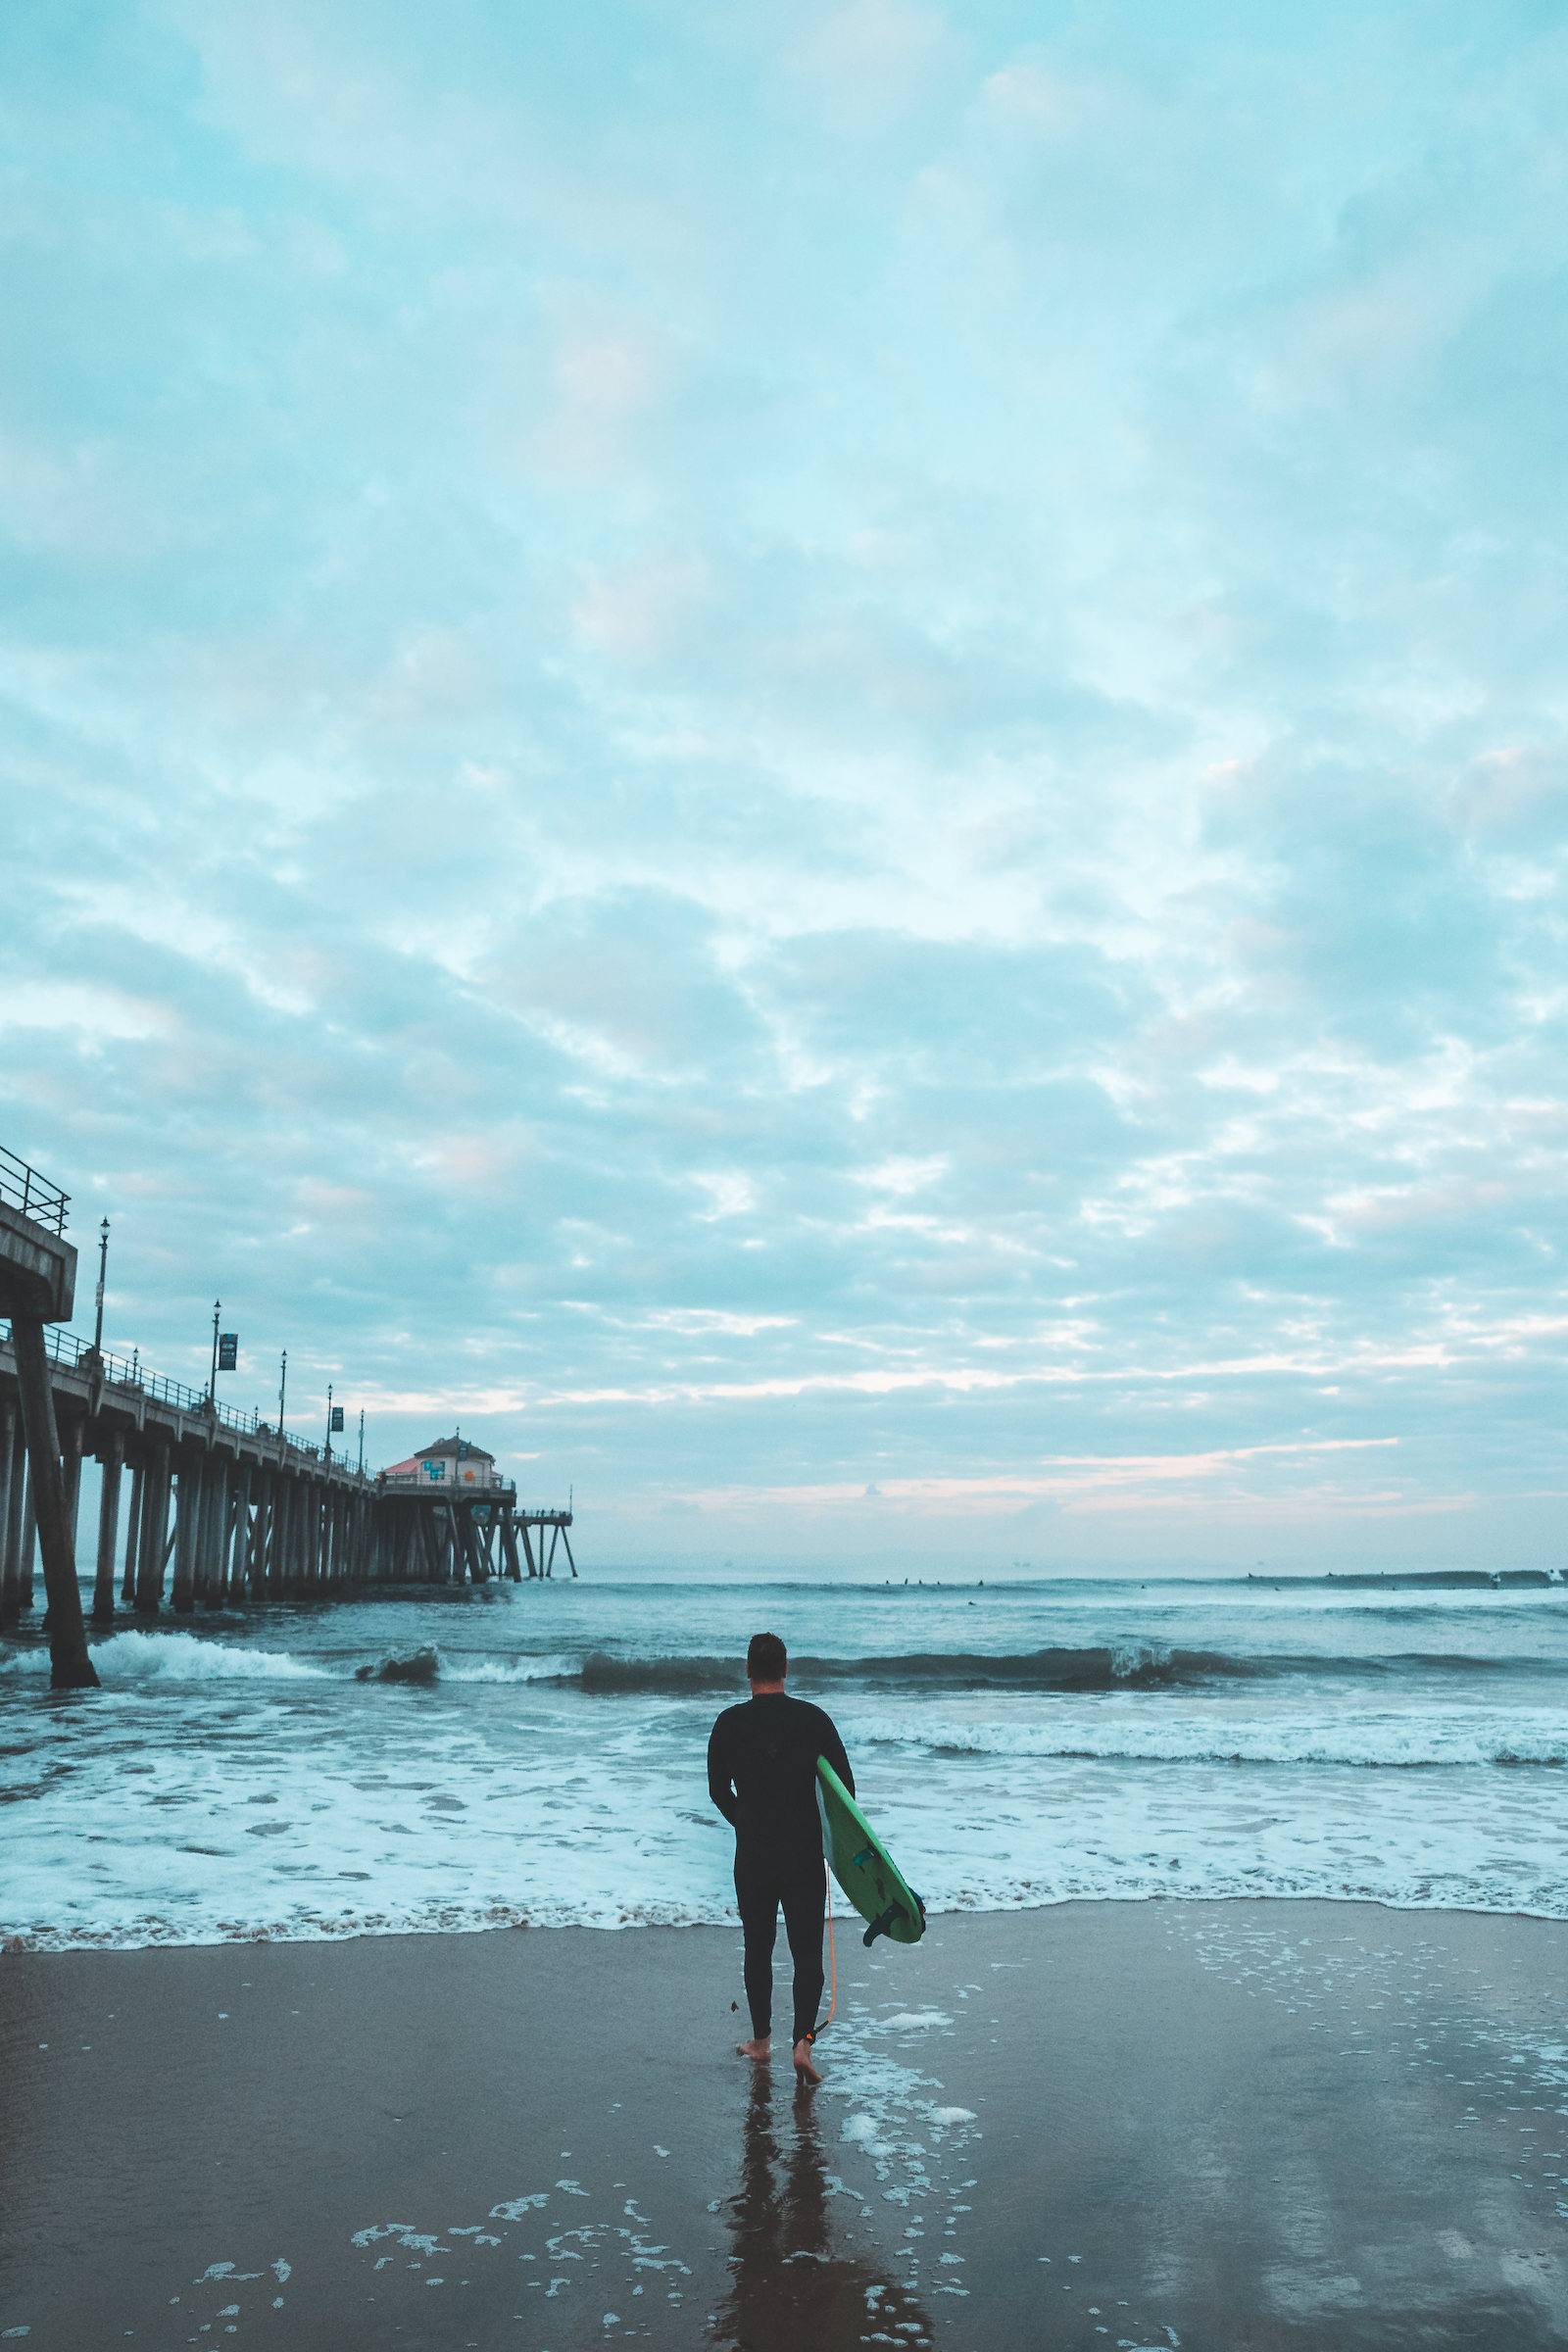 A surfer going out for a sunrise session in Huntington Beach, CA.